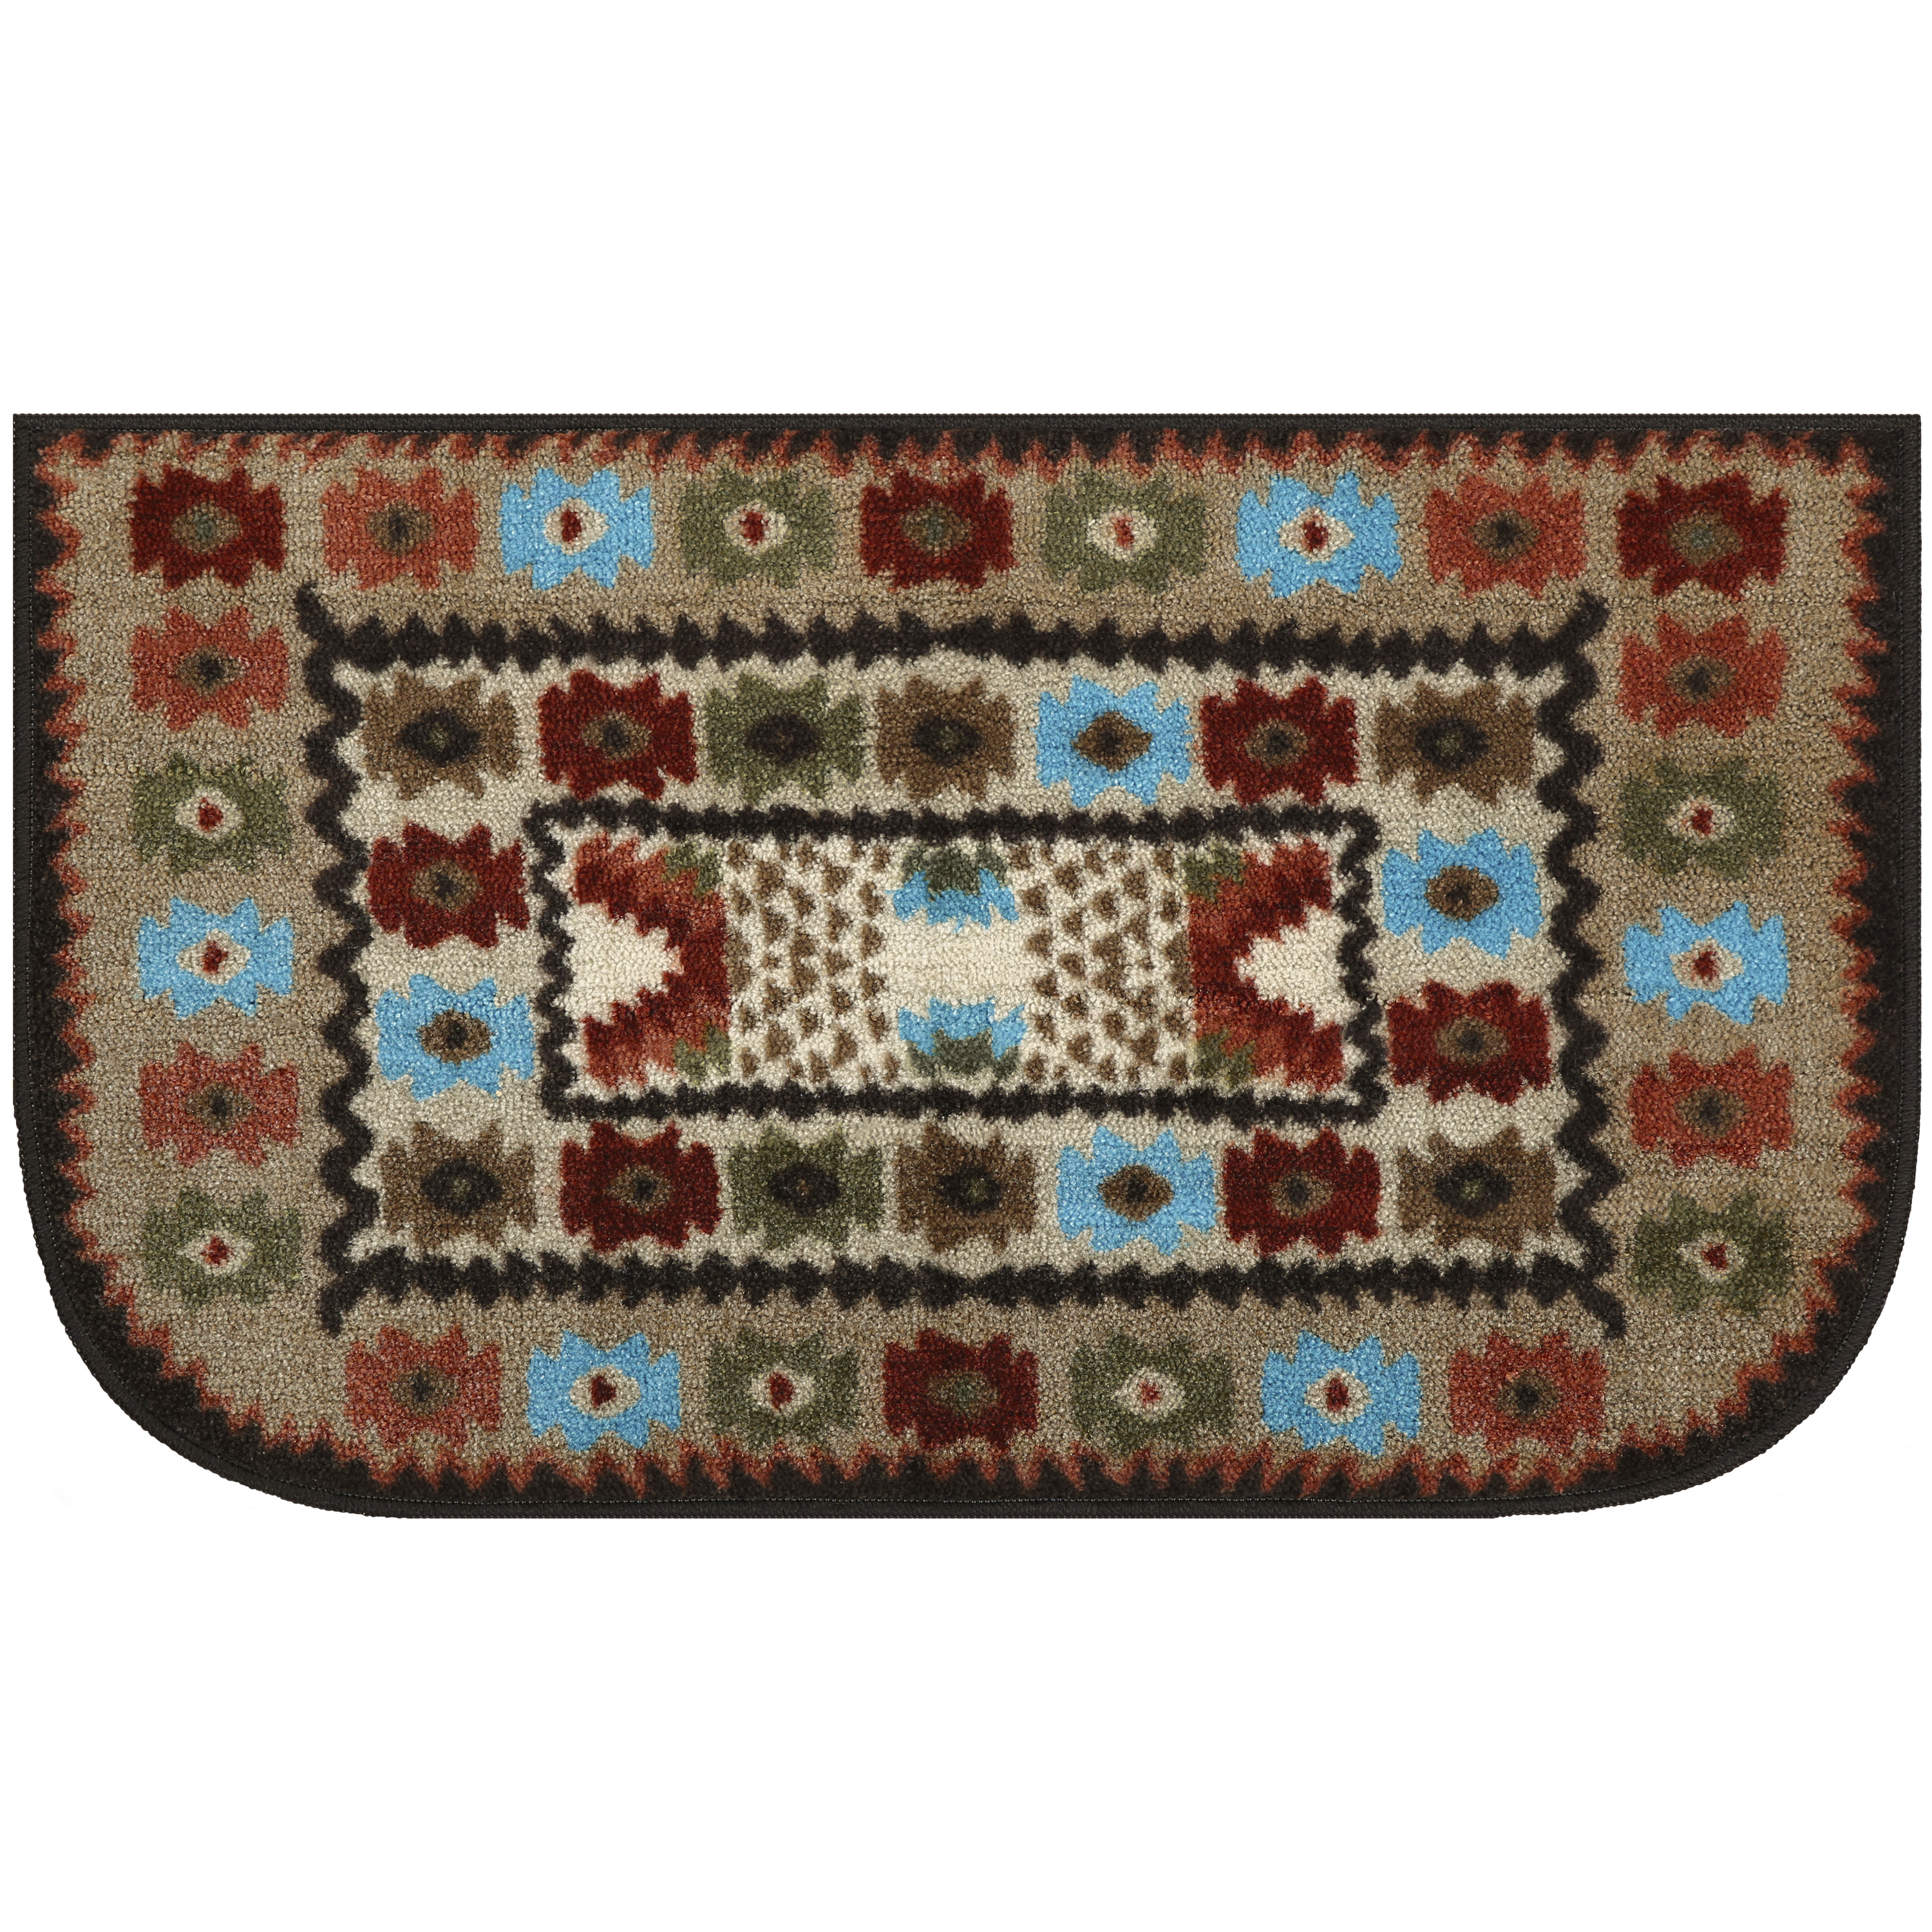 "Mainstays Southwest Multi Colored Print Accent Rug, 1'8"" x 2'10"""